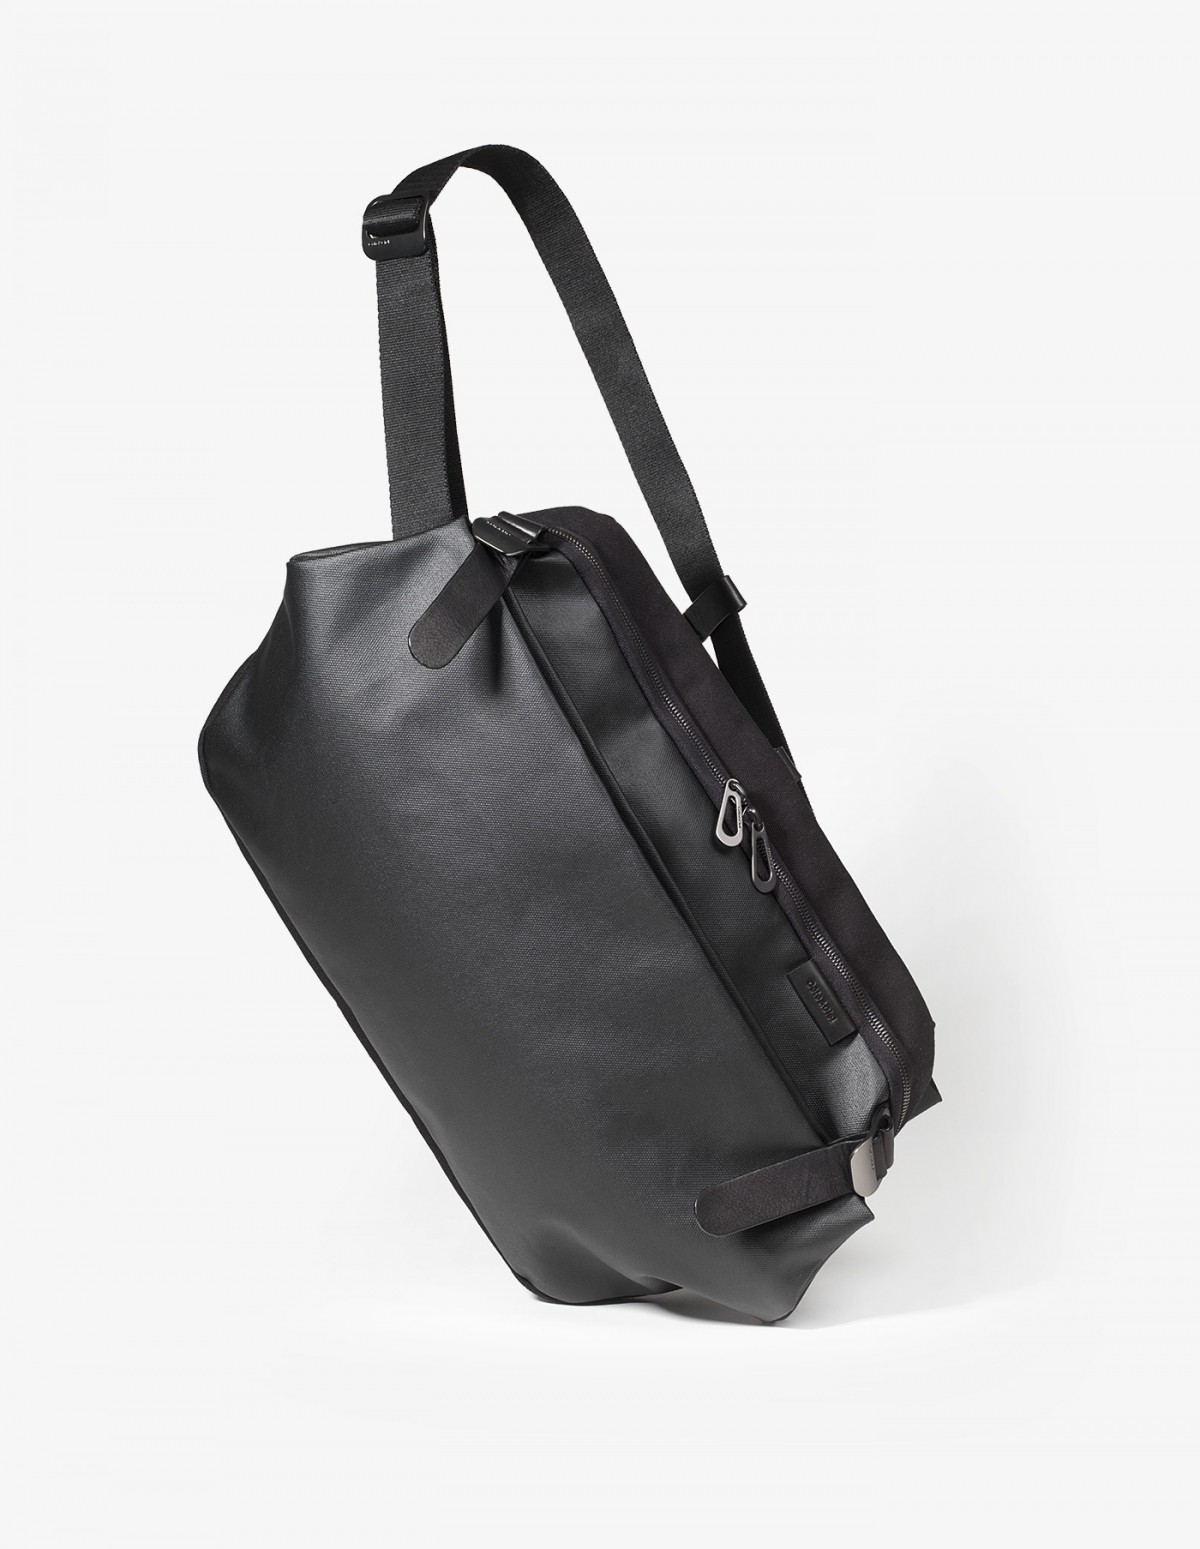 Cote & Ciel Riss Bag in Black Coated Canvas